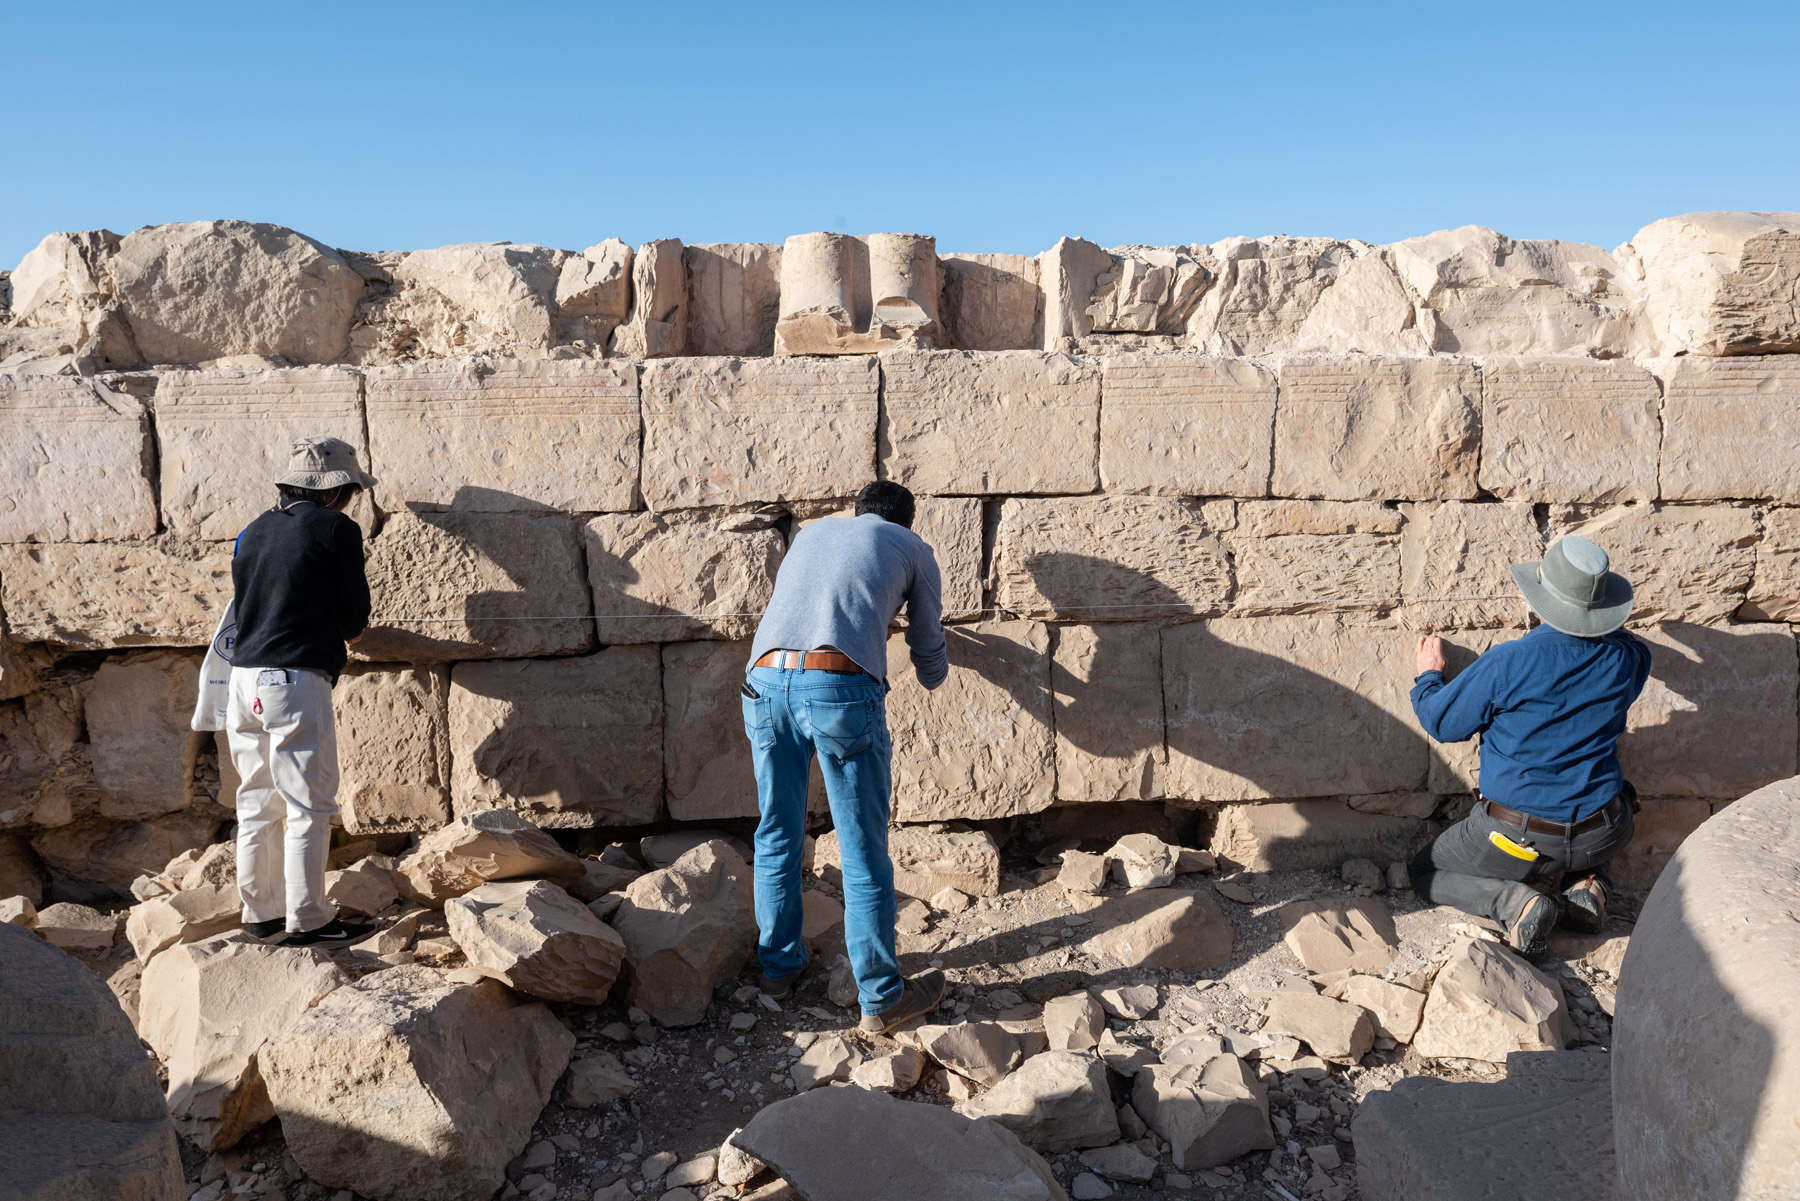 Fig. 14. Senior conservator Hiroko Kariya (left), archaeologist and photographer Ayman Damarany (center), and archaeologist Jo Young (right) setting the reference points for photo elevations along the inner, transverse columned hall of the temple. Photo: Logan Dean © North Abydos Expedition 2019